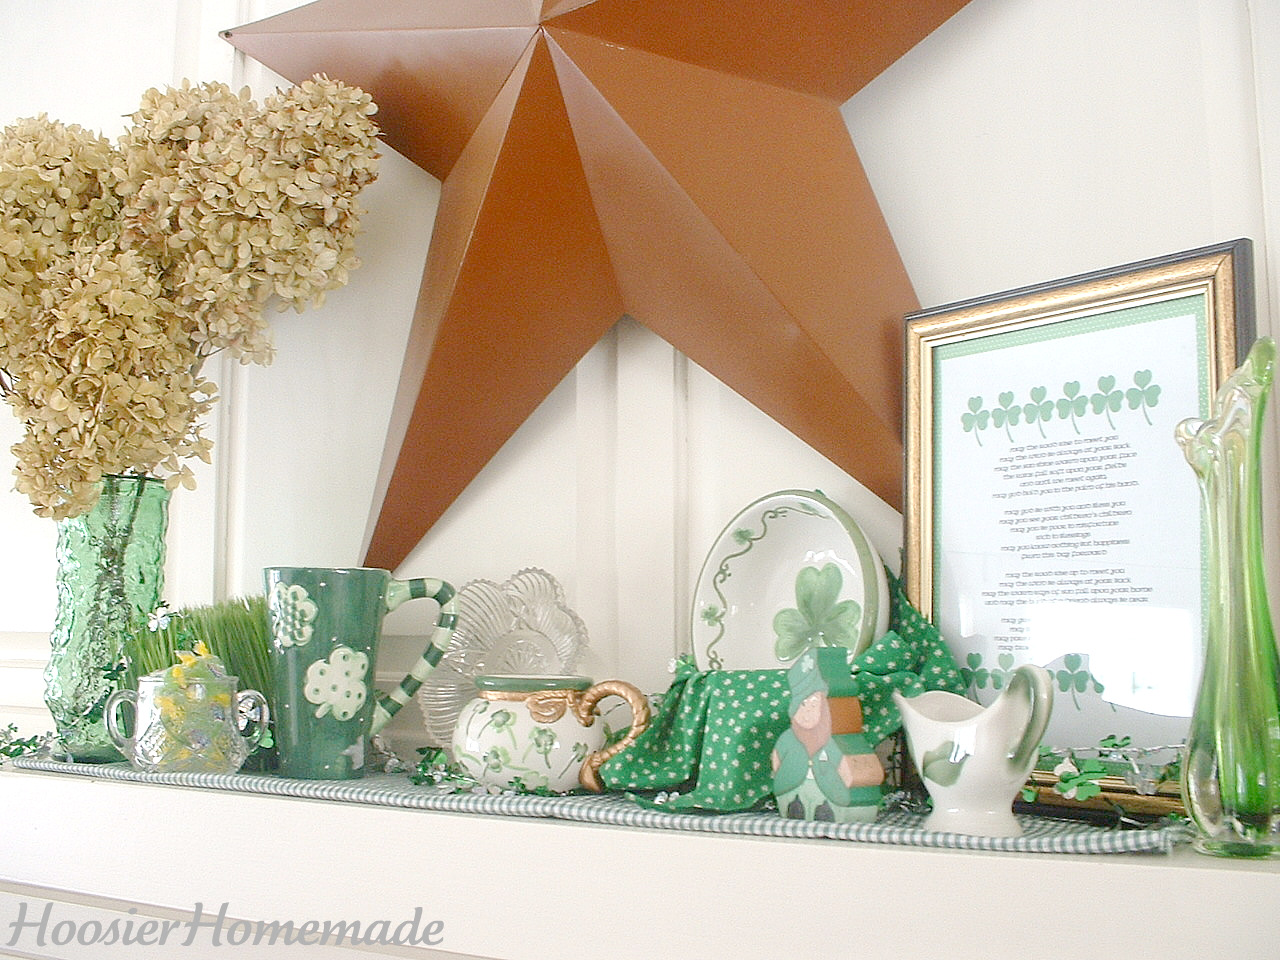 St patrick day on pinterest 21 pins for St patricks day decorations for the home